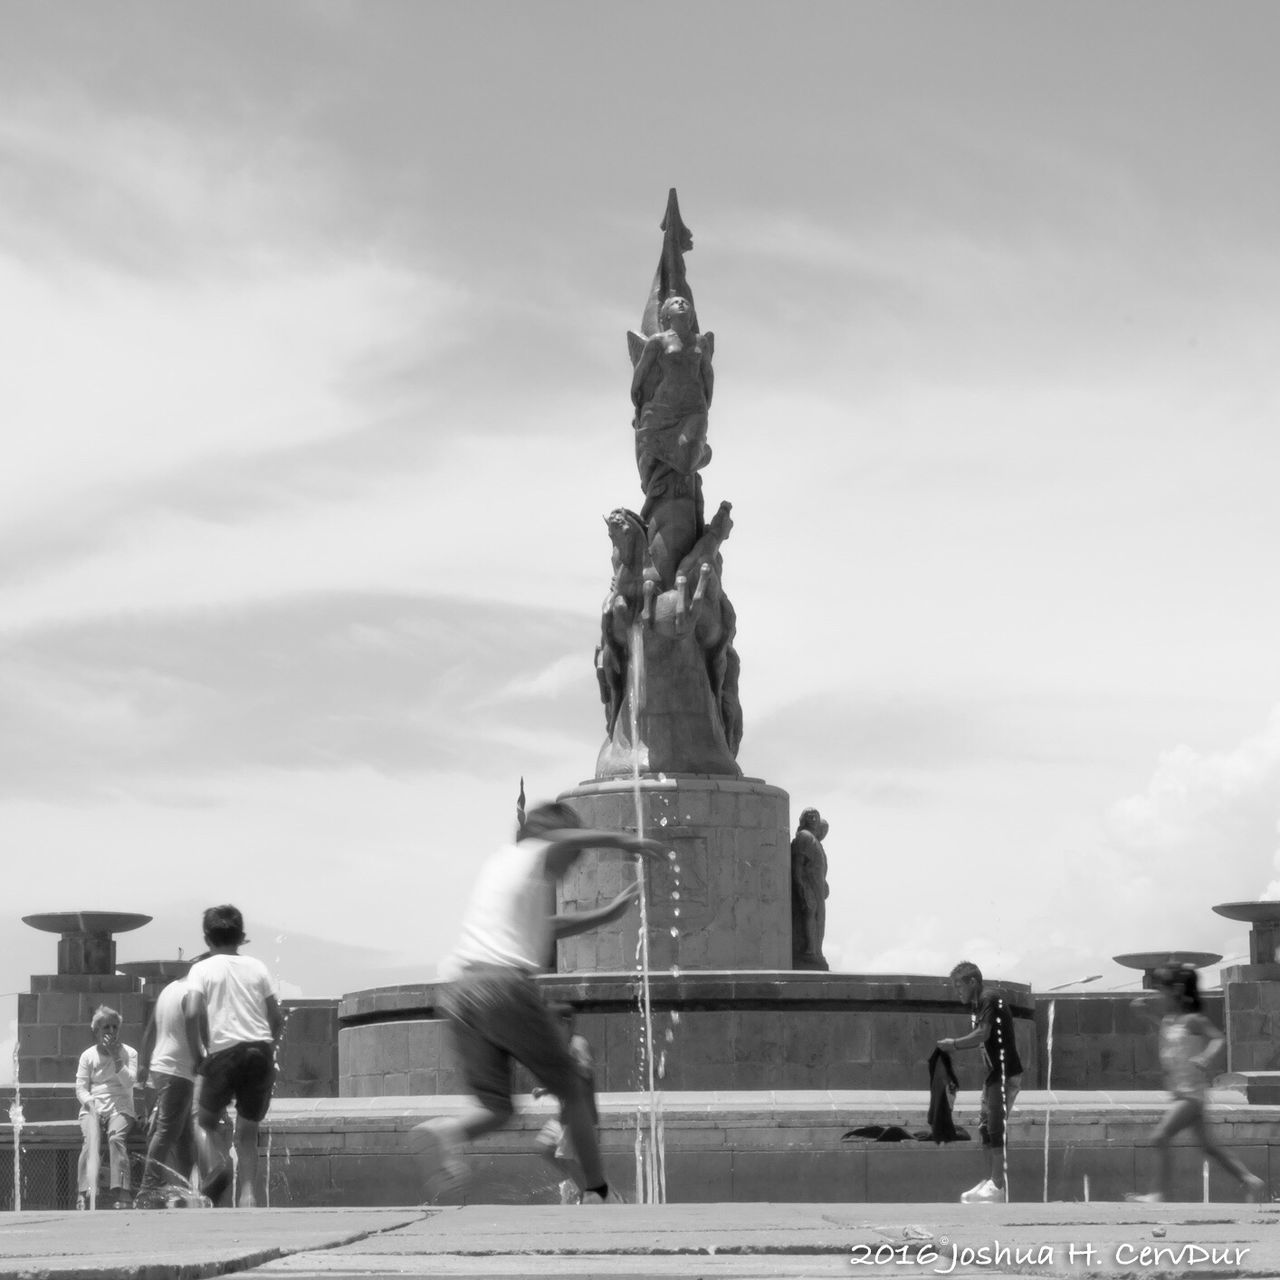 VIEW OF STATUE IN FRONT OF MONUMENT